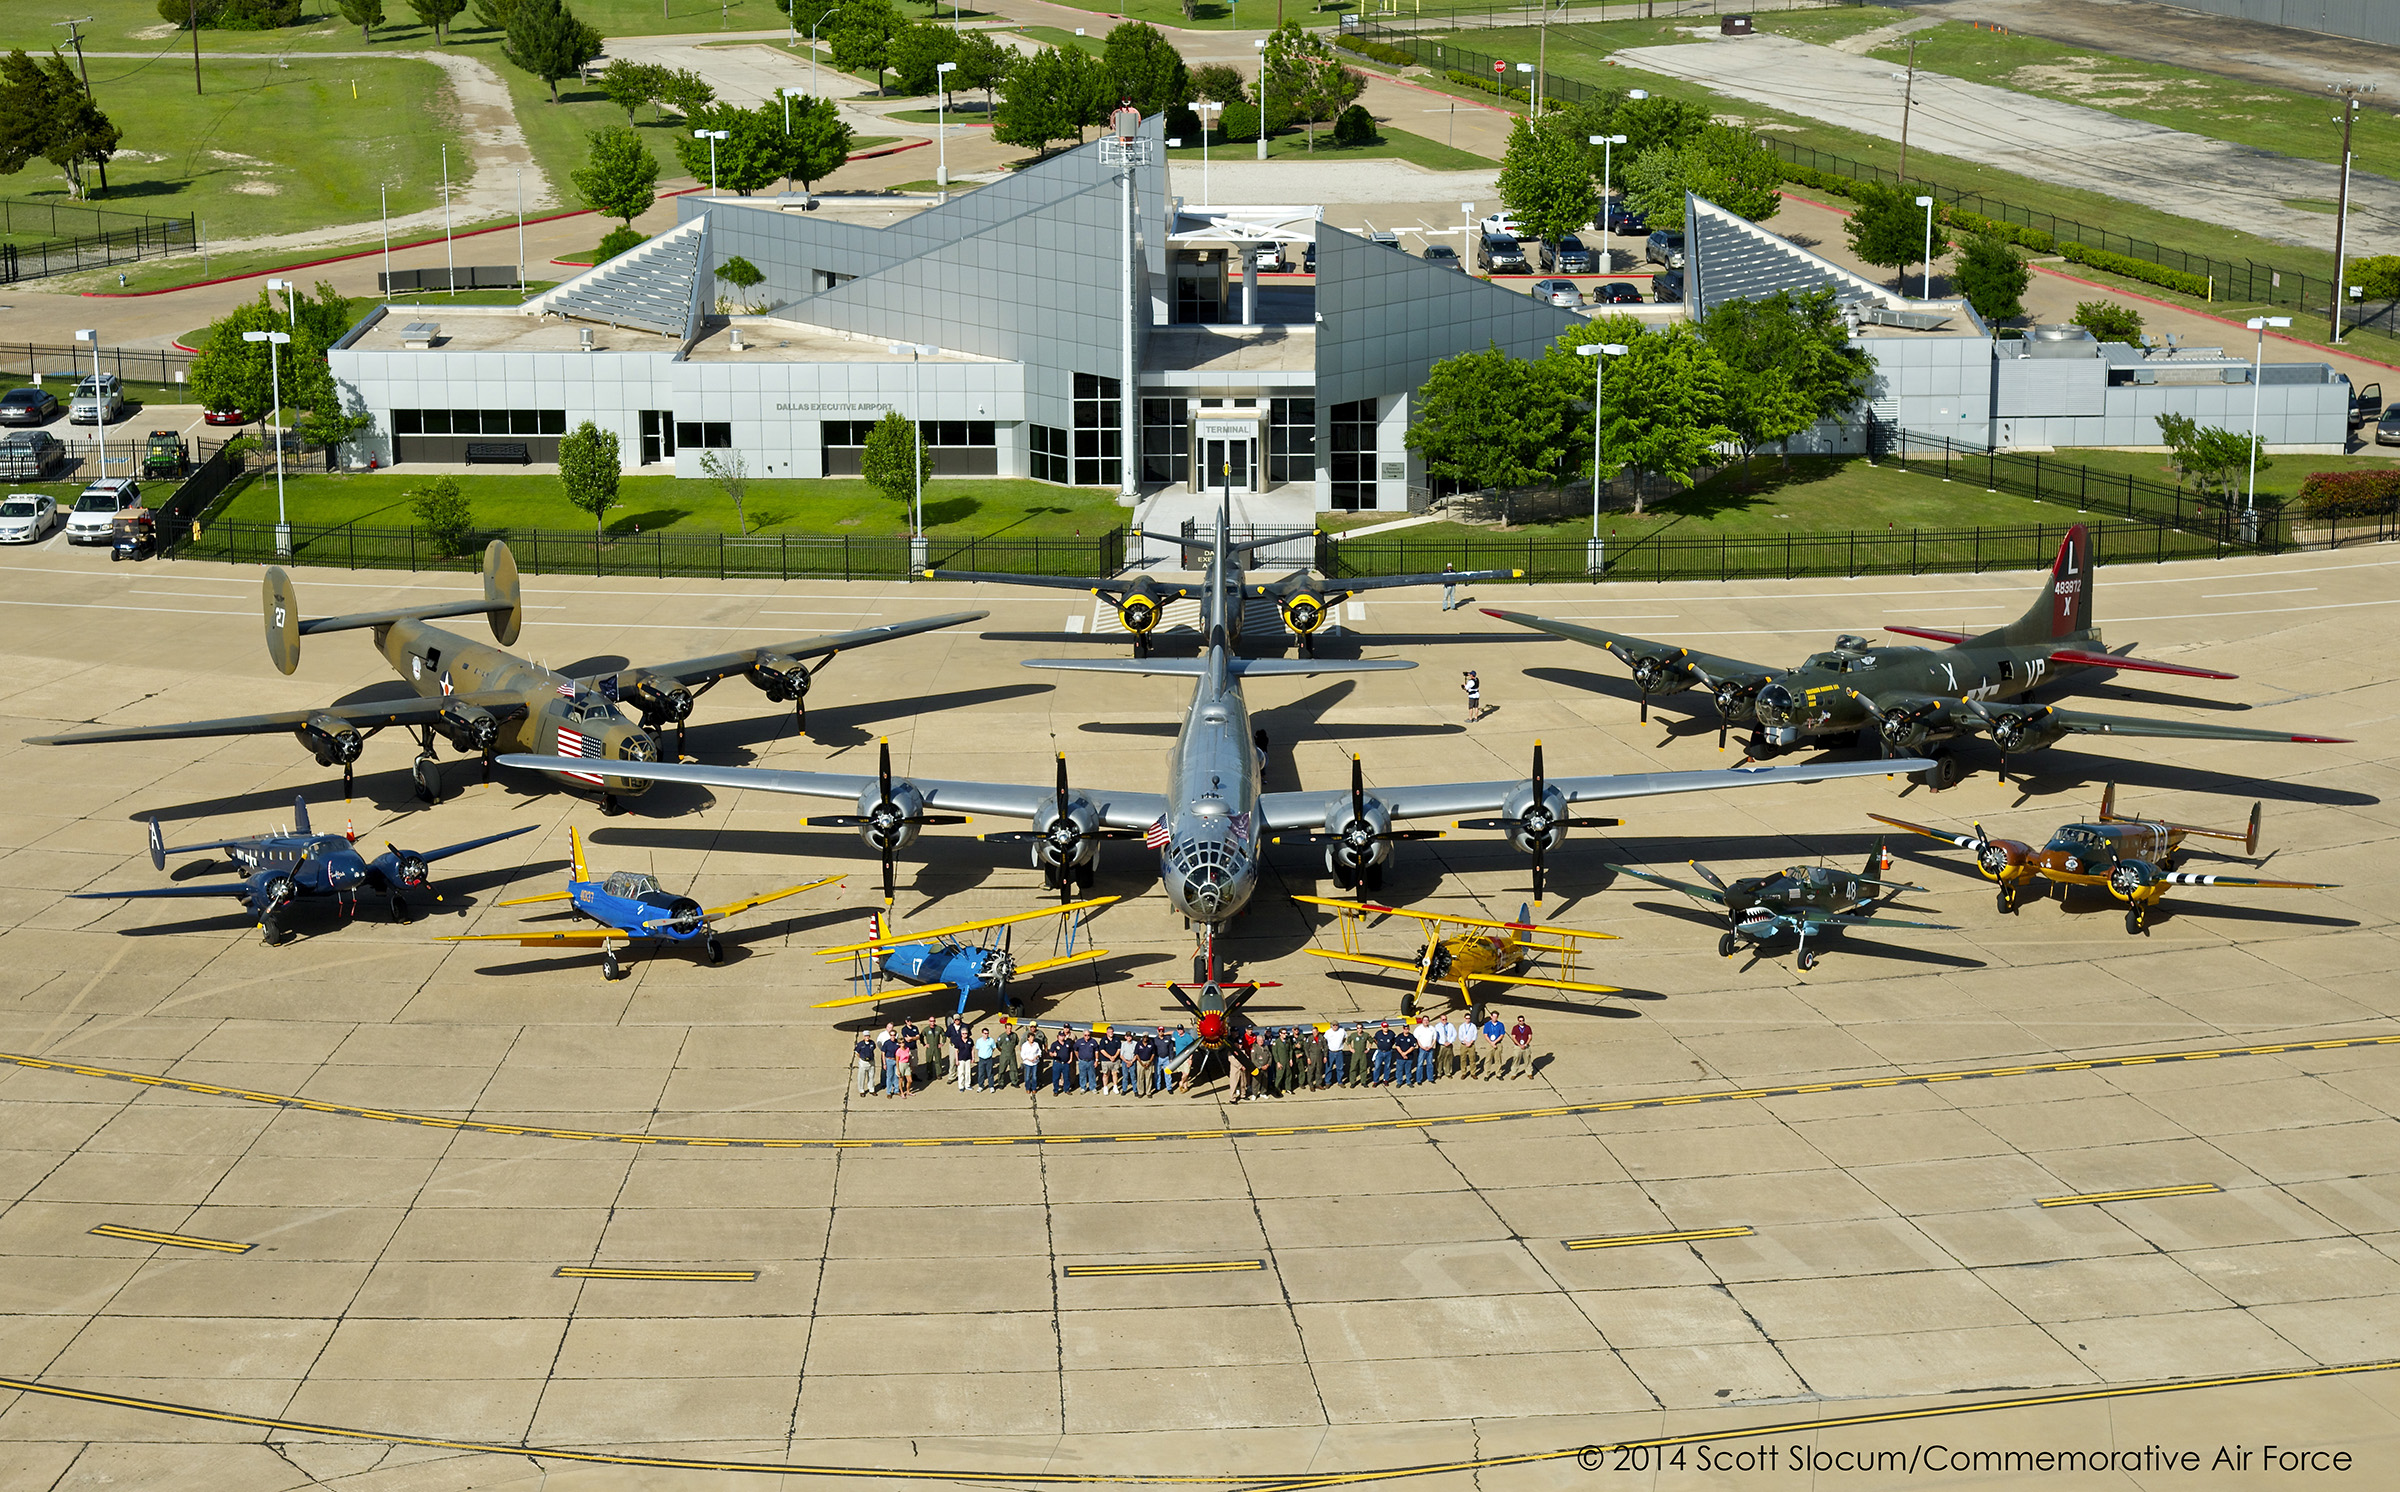 Presentation and Tour of Commemorative Air Force Headquarters